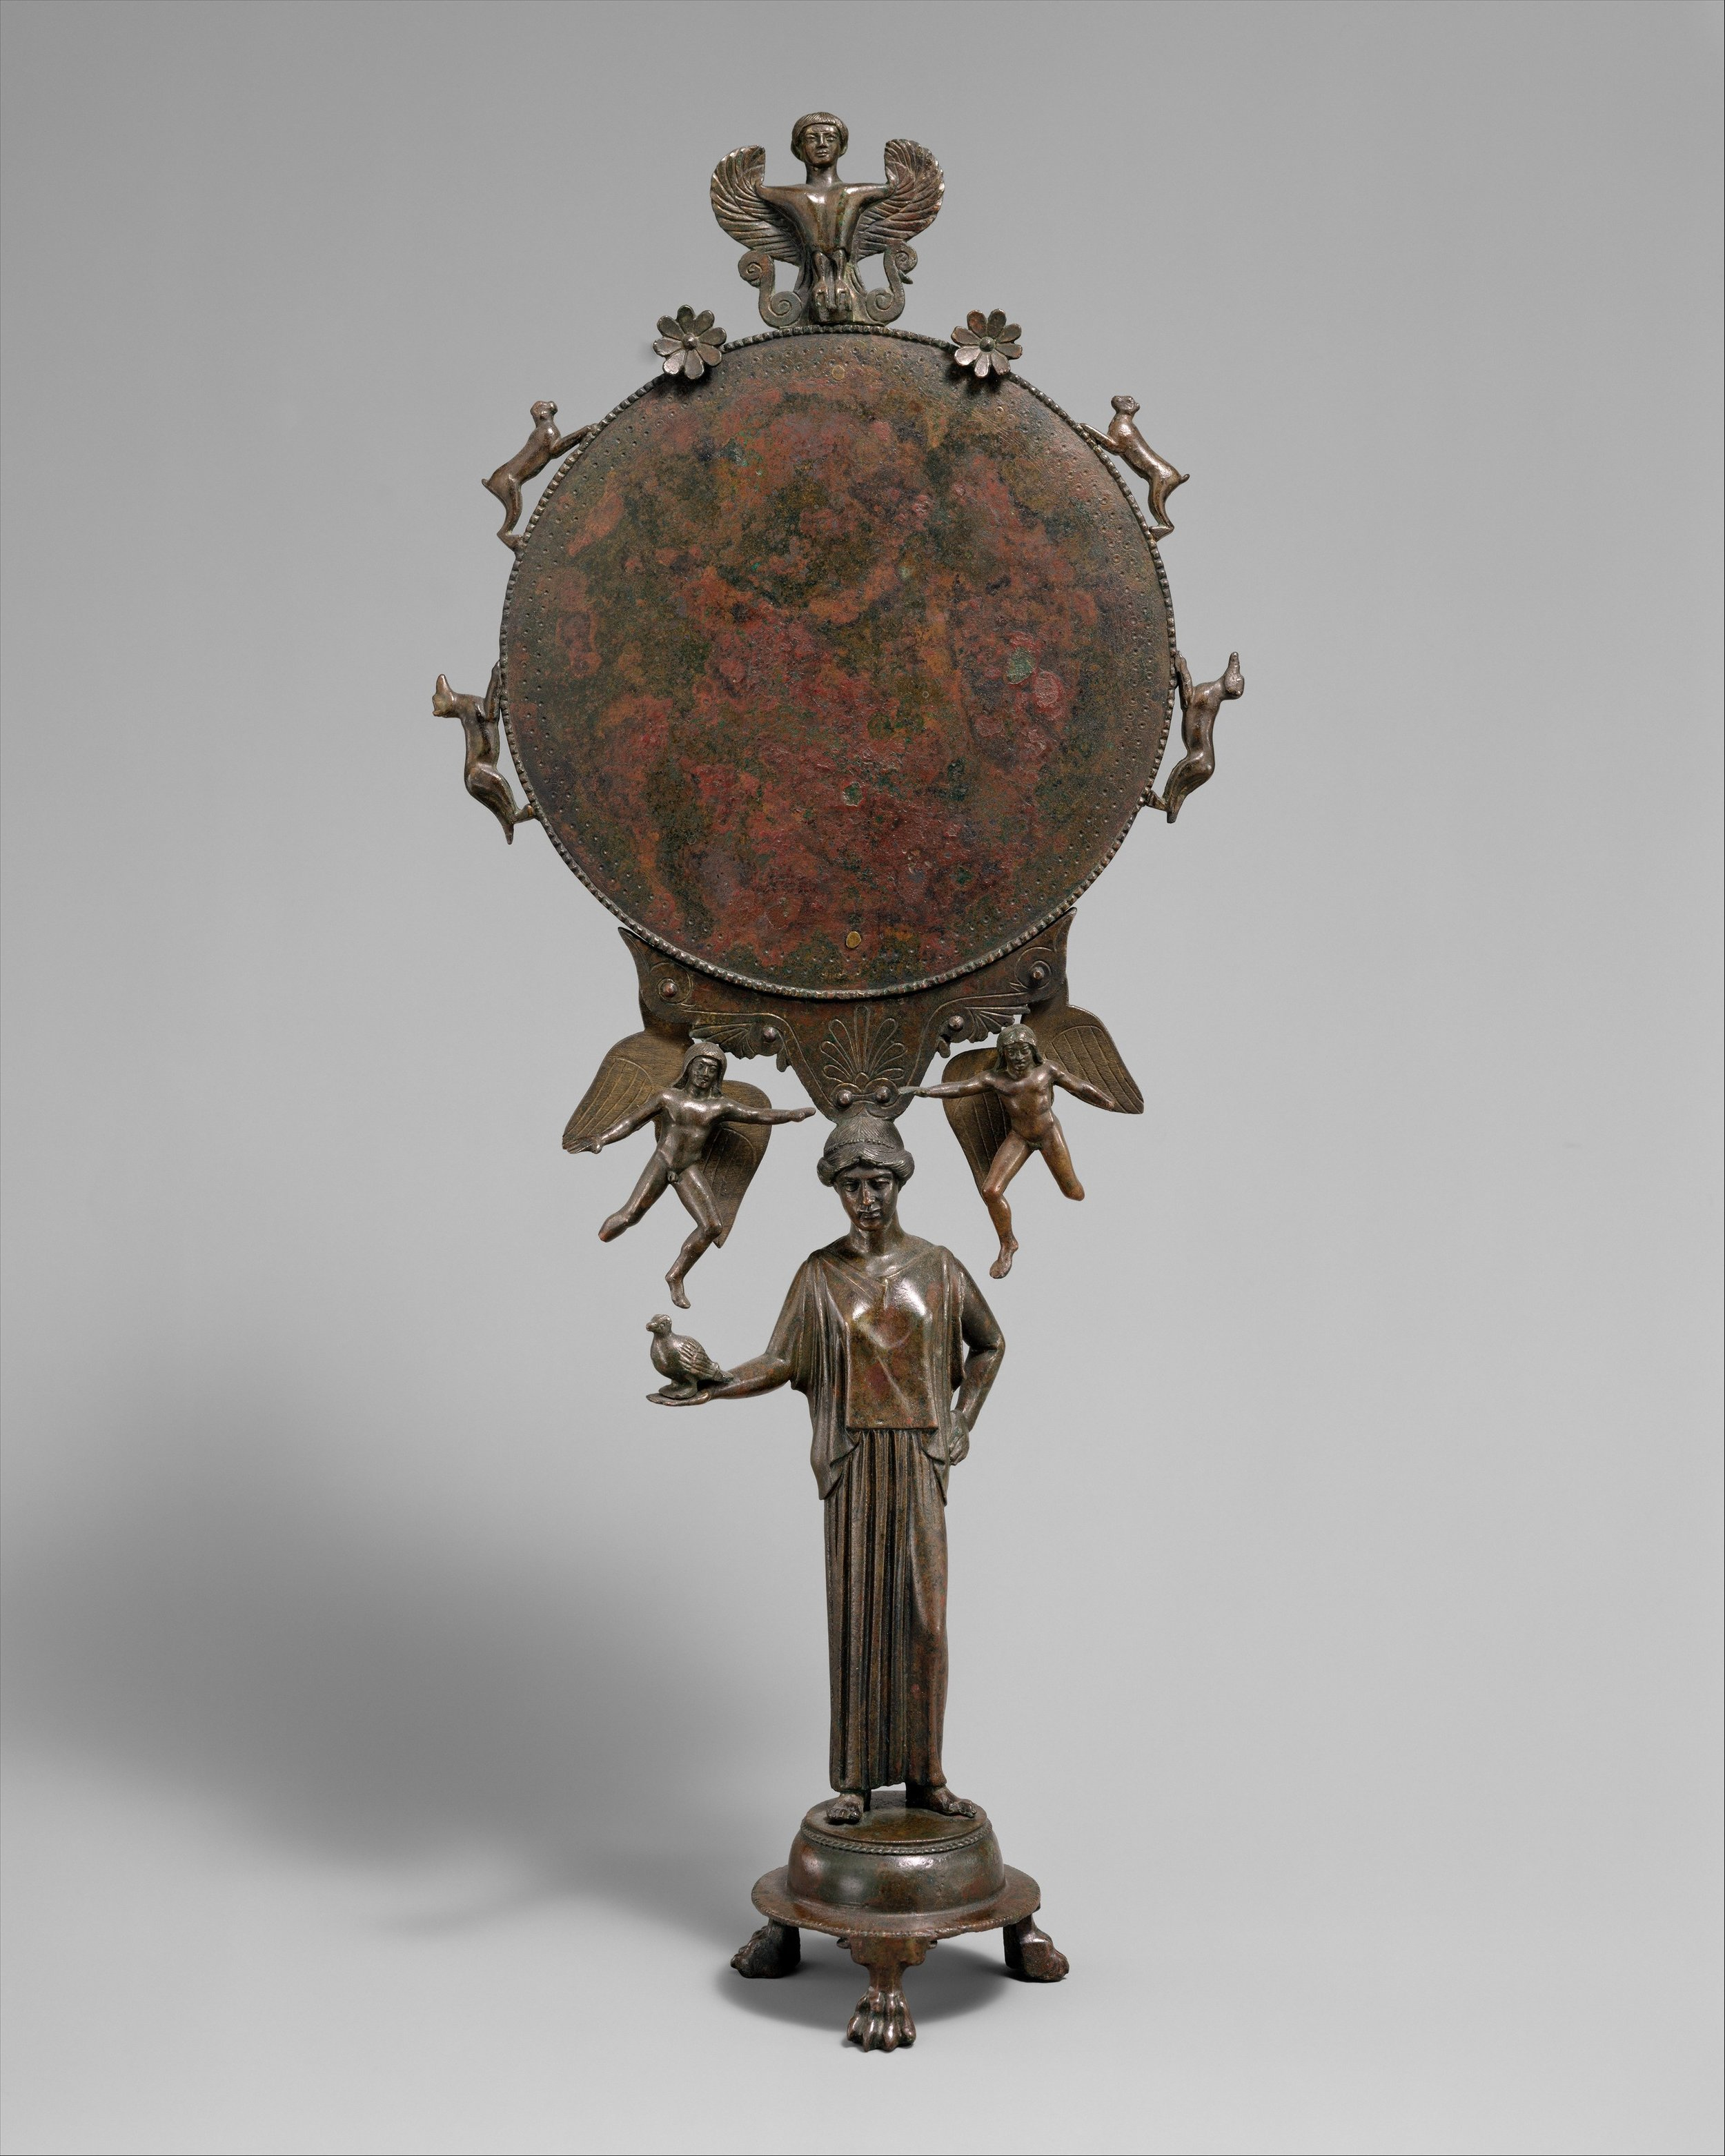 this bronze mirror has seen better days, but it's still pretty fancy. - Mid-fifth century BCE, courtesy of the MET.